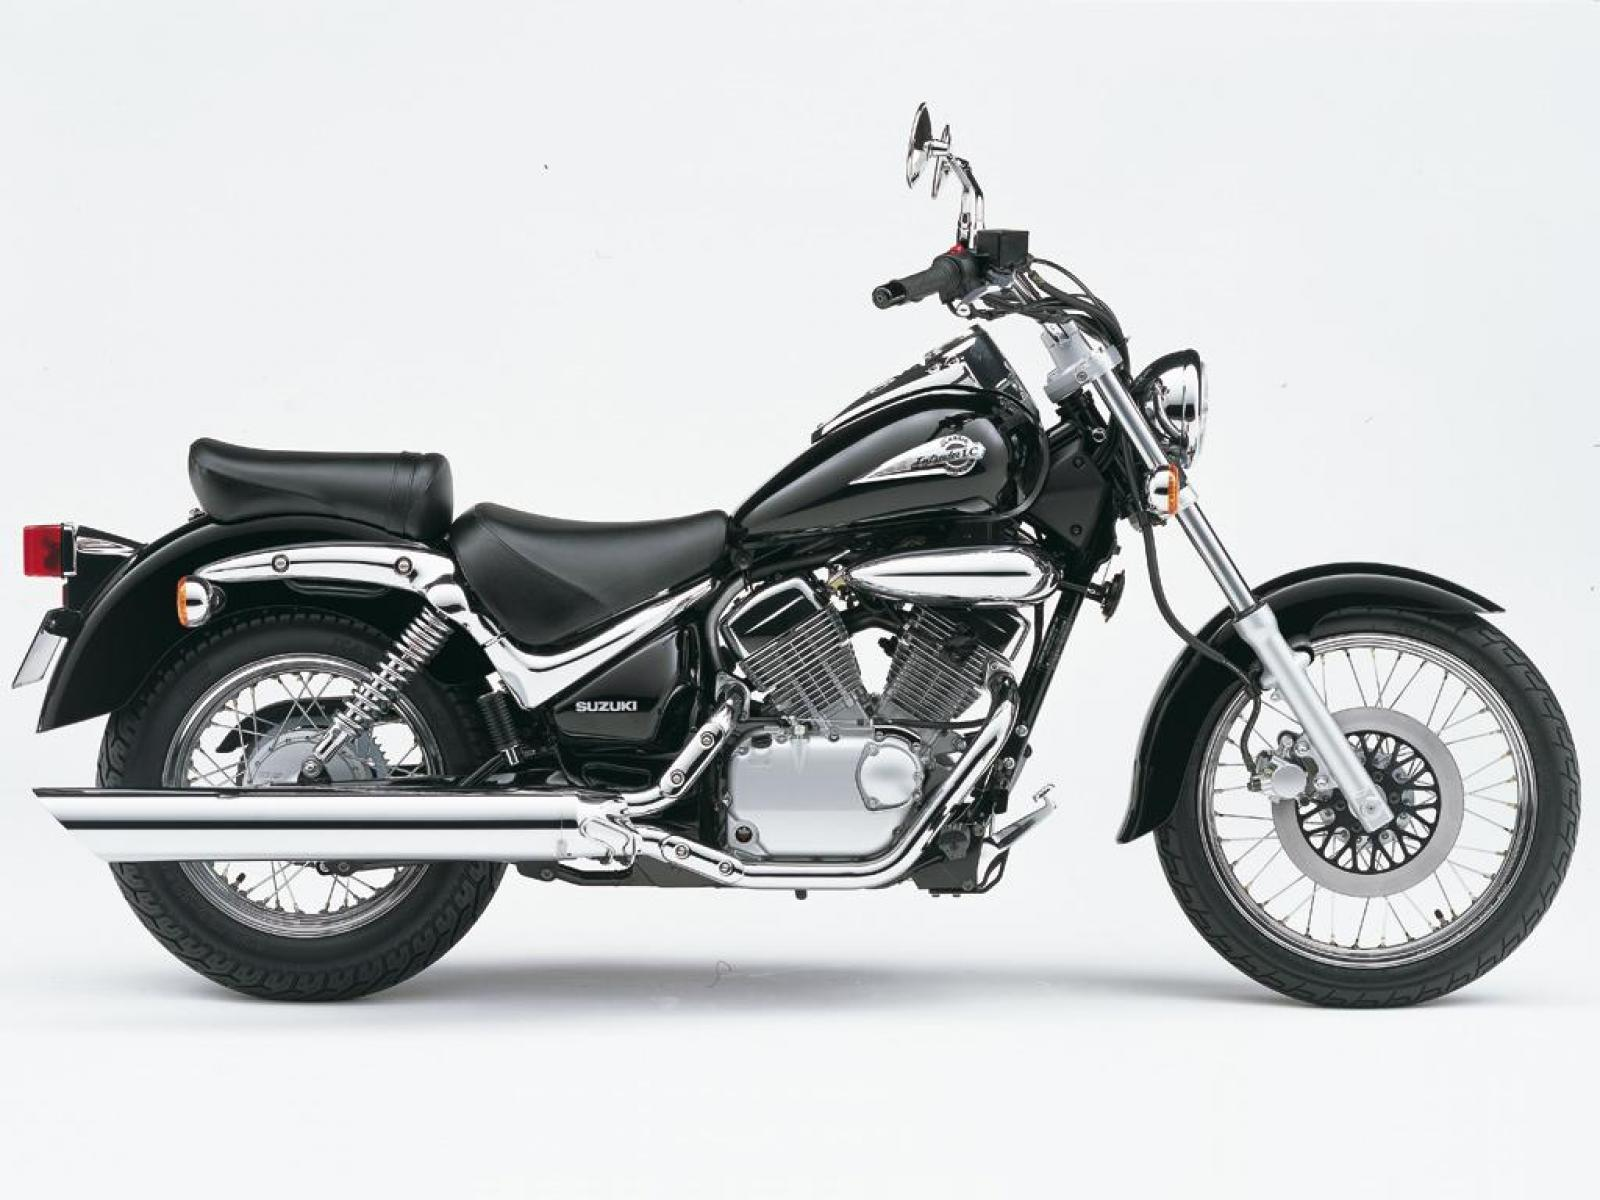 suzuki suzuki intruder 125 moto zombdrive com. Black Bedroom Furniture Sets. Home Design Ideas